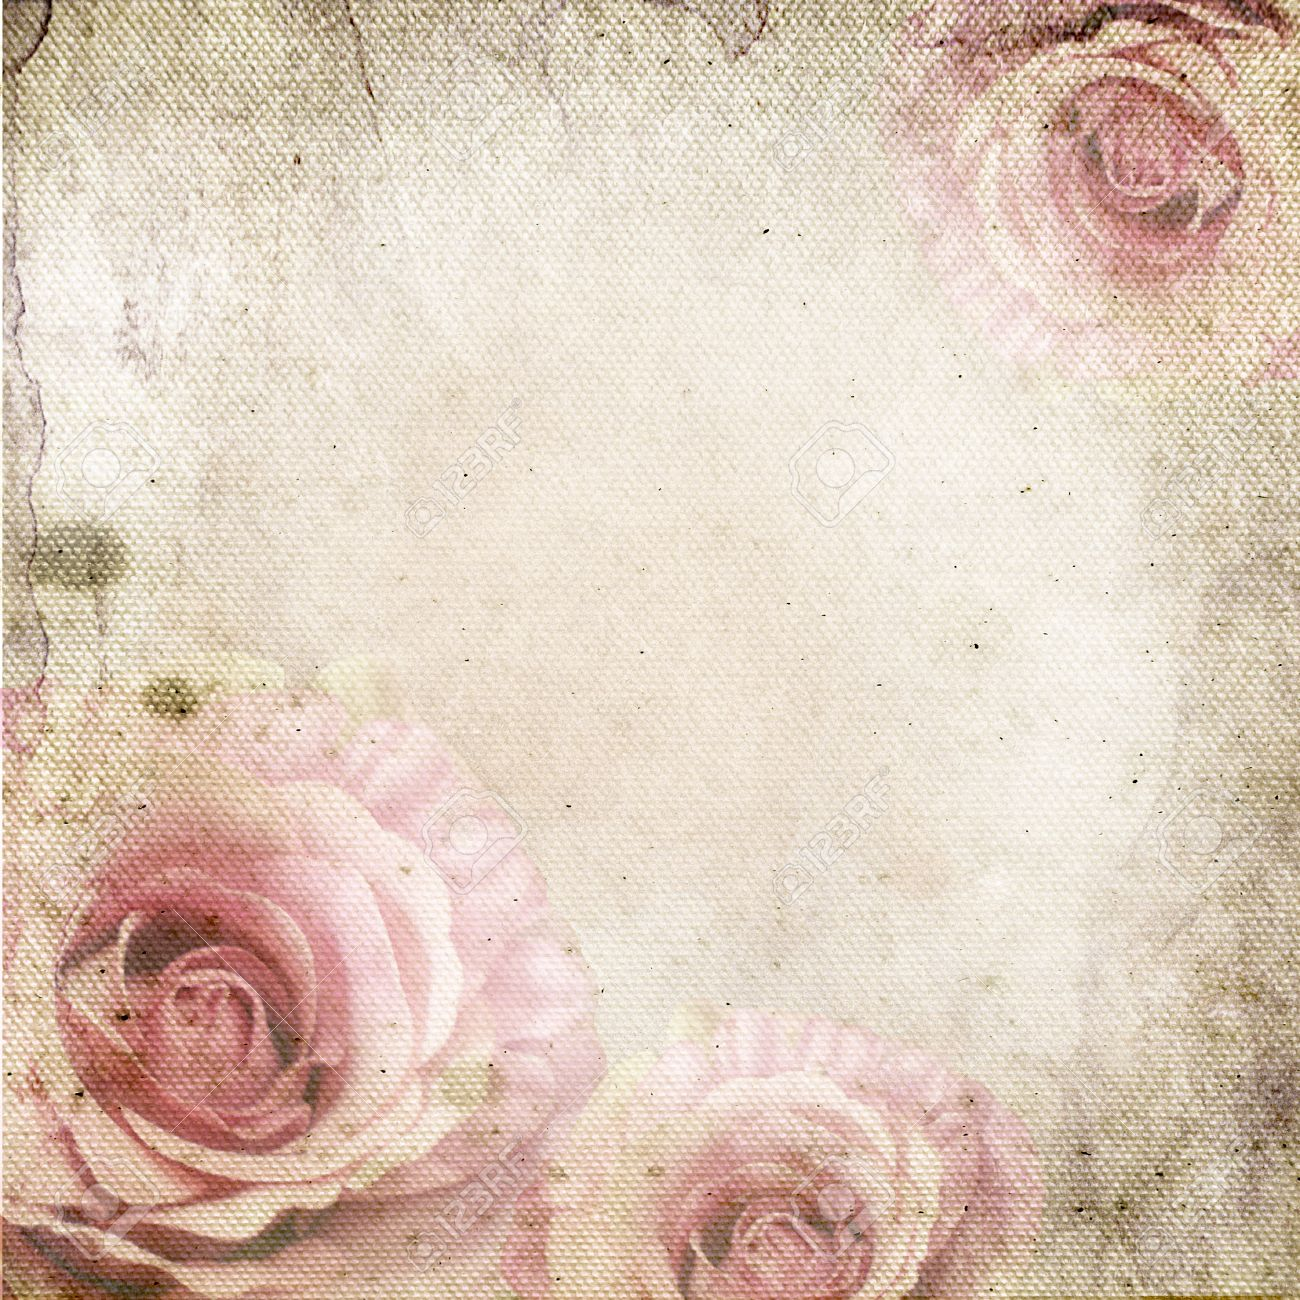 Vintage Background With Roses Over Retro Paper Stock Photo 1300x1300